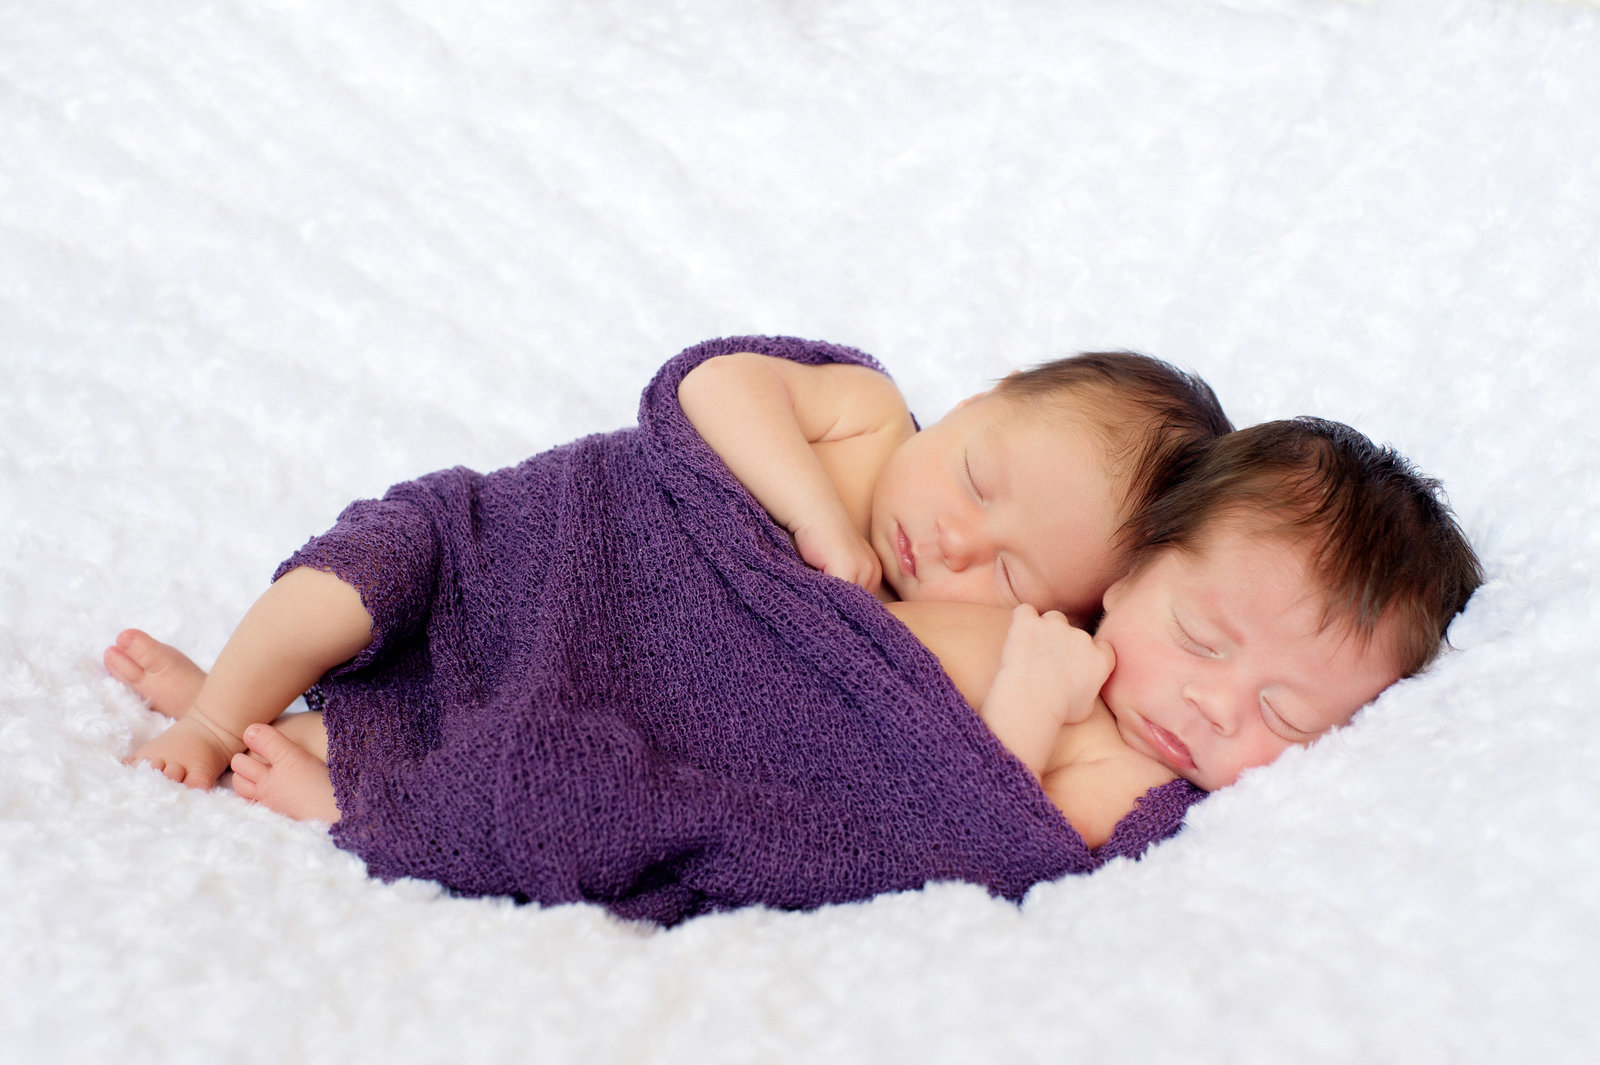 twin newborn sisters sleep wrapped in purple